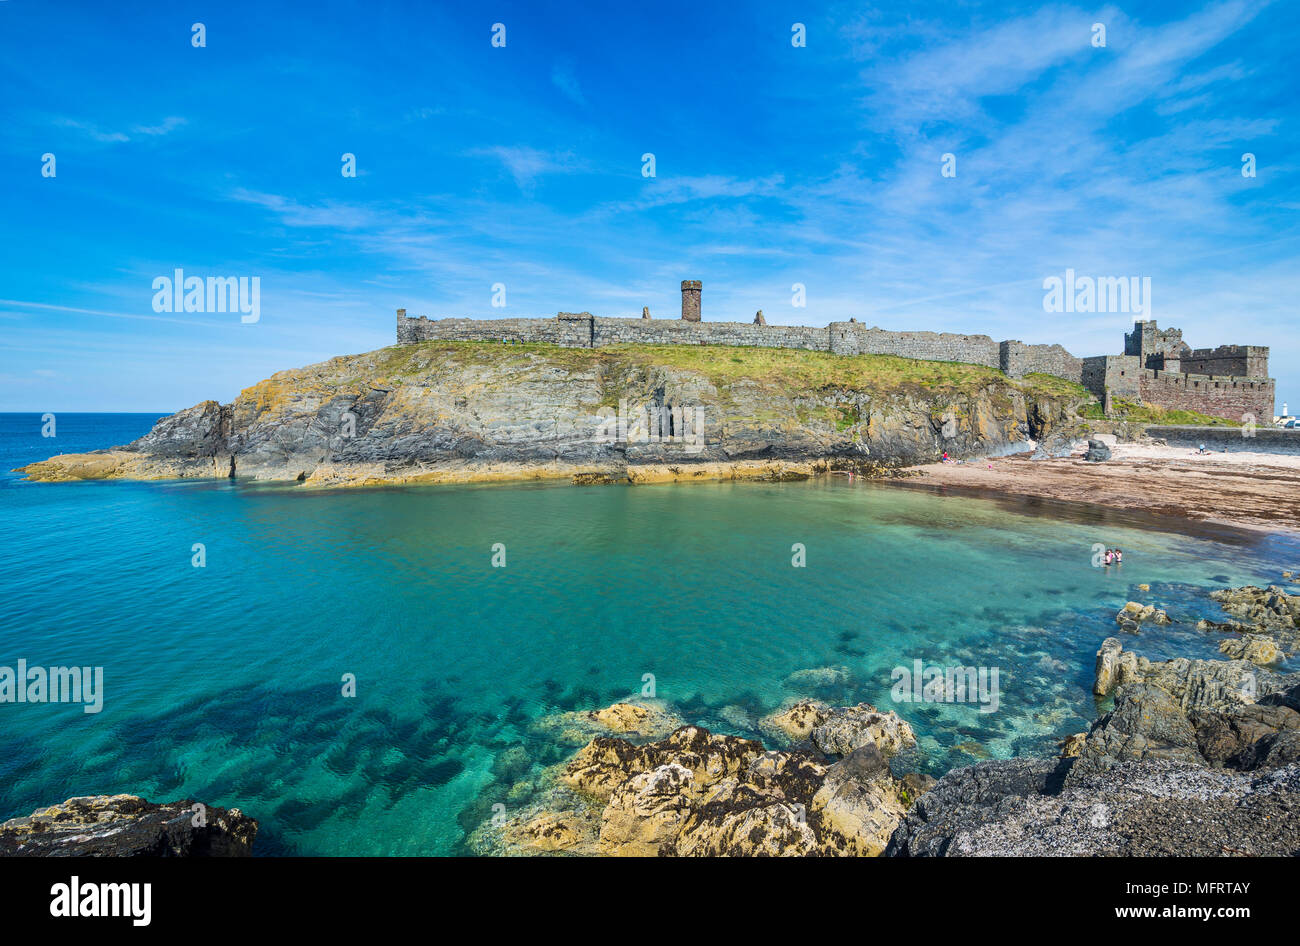 Peel castle, Peel, Isle of Man, crown dependency of the United Kingdom - Stock Image